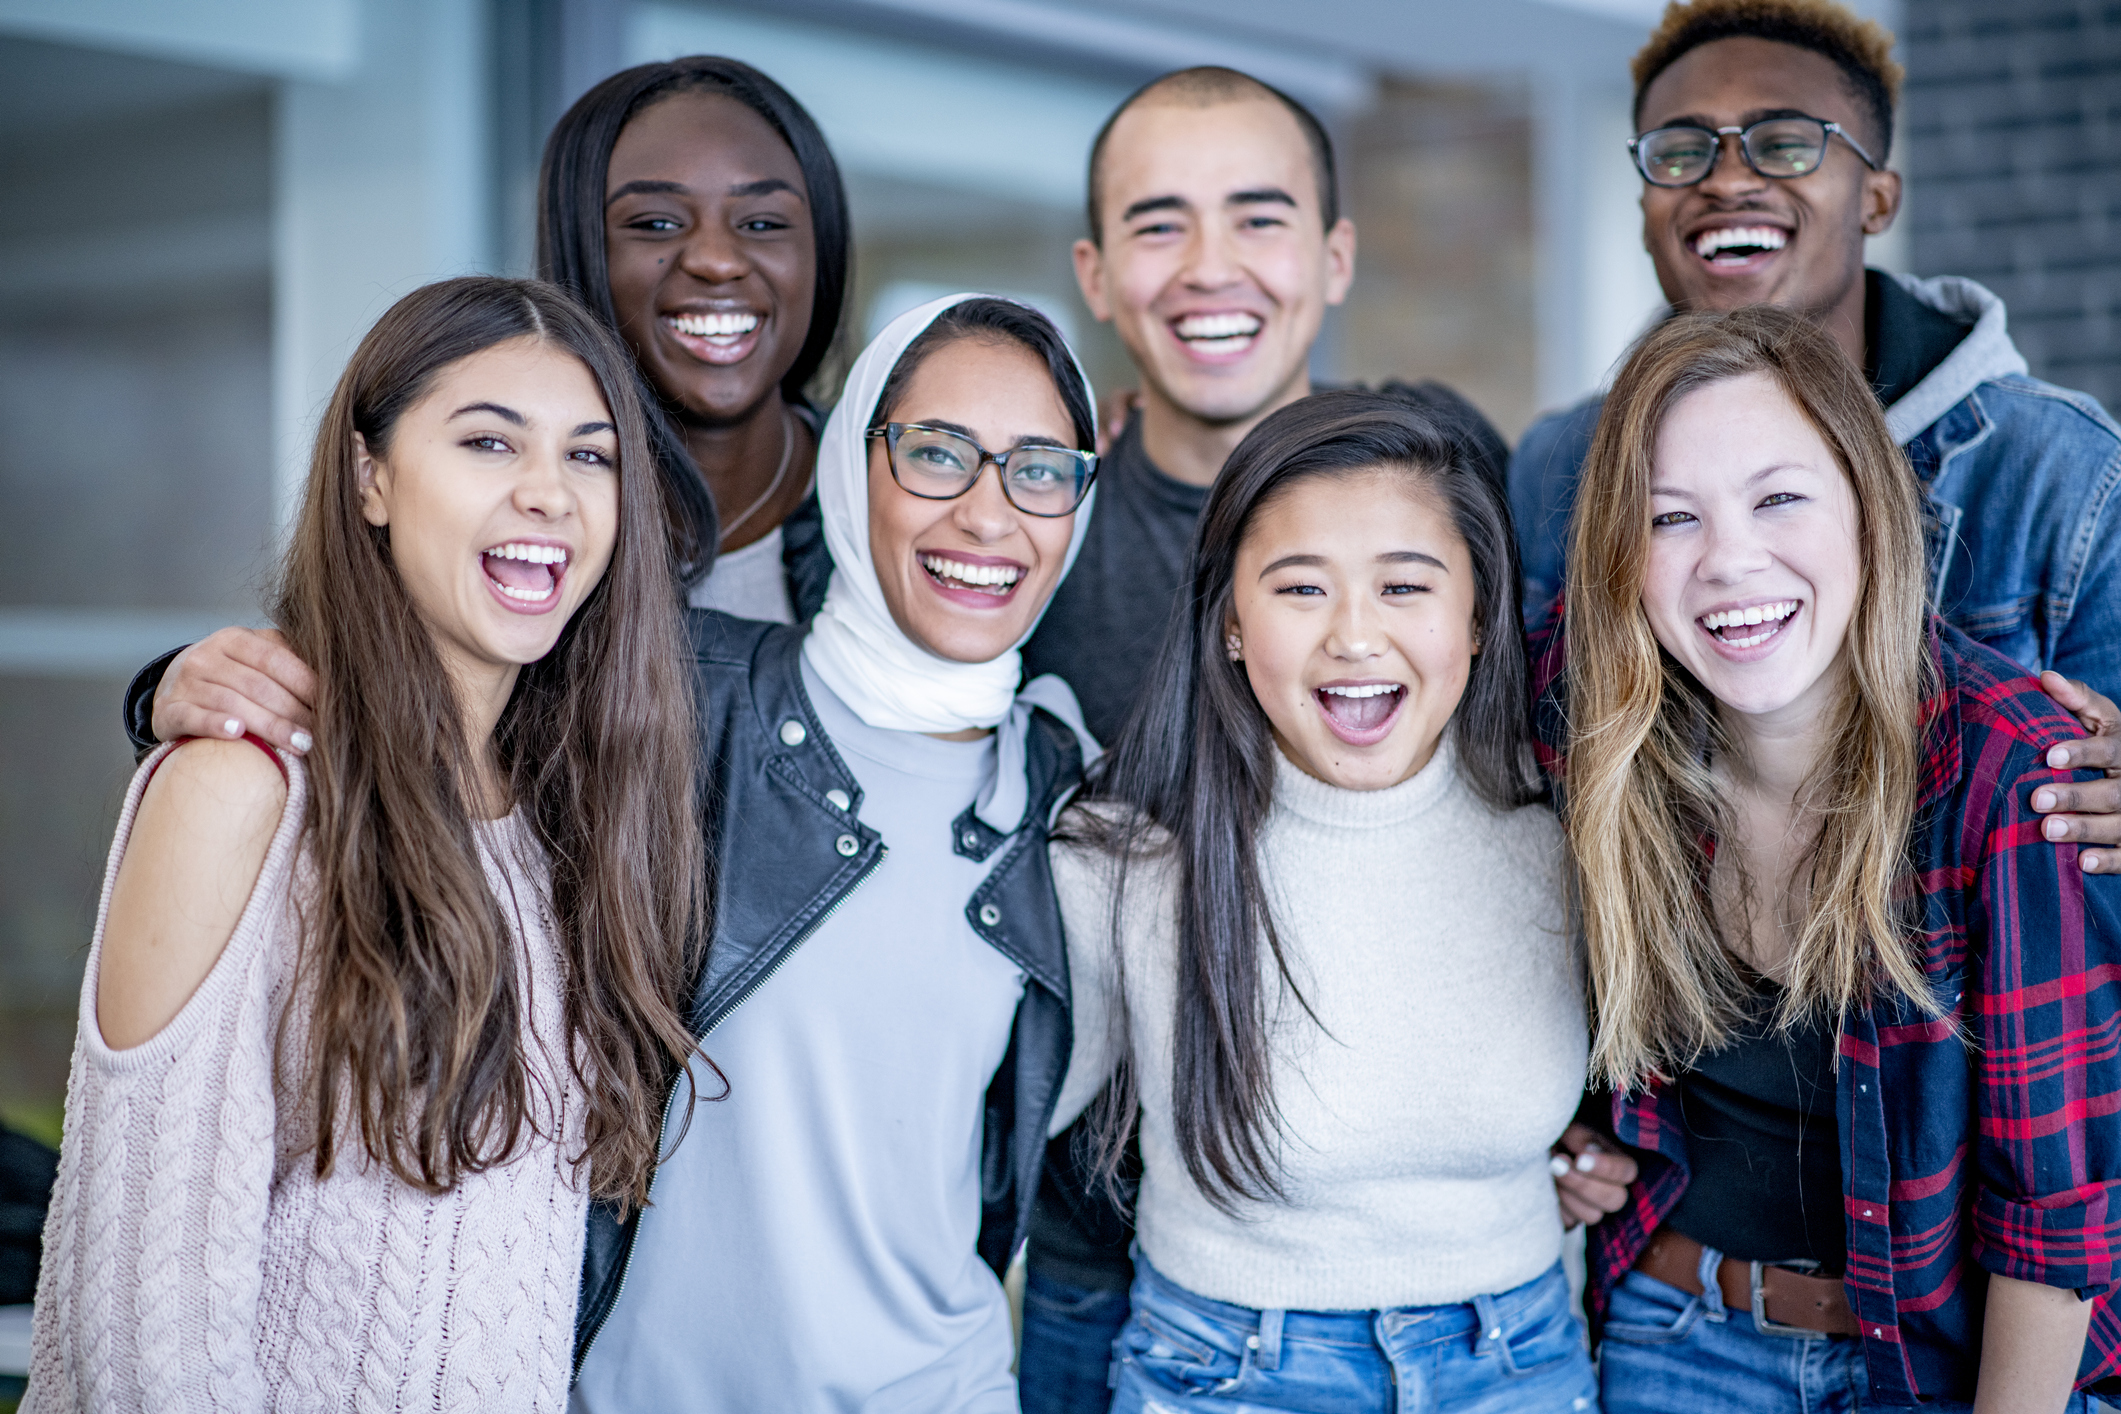 Portrait of a group of students with bright smiles